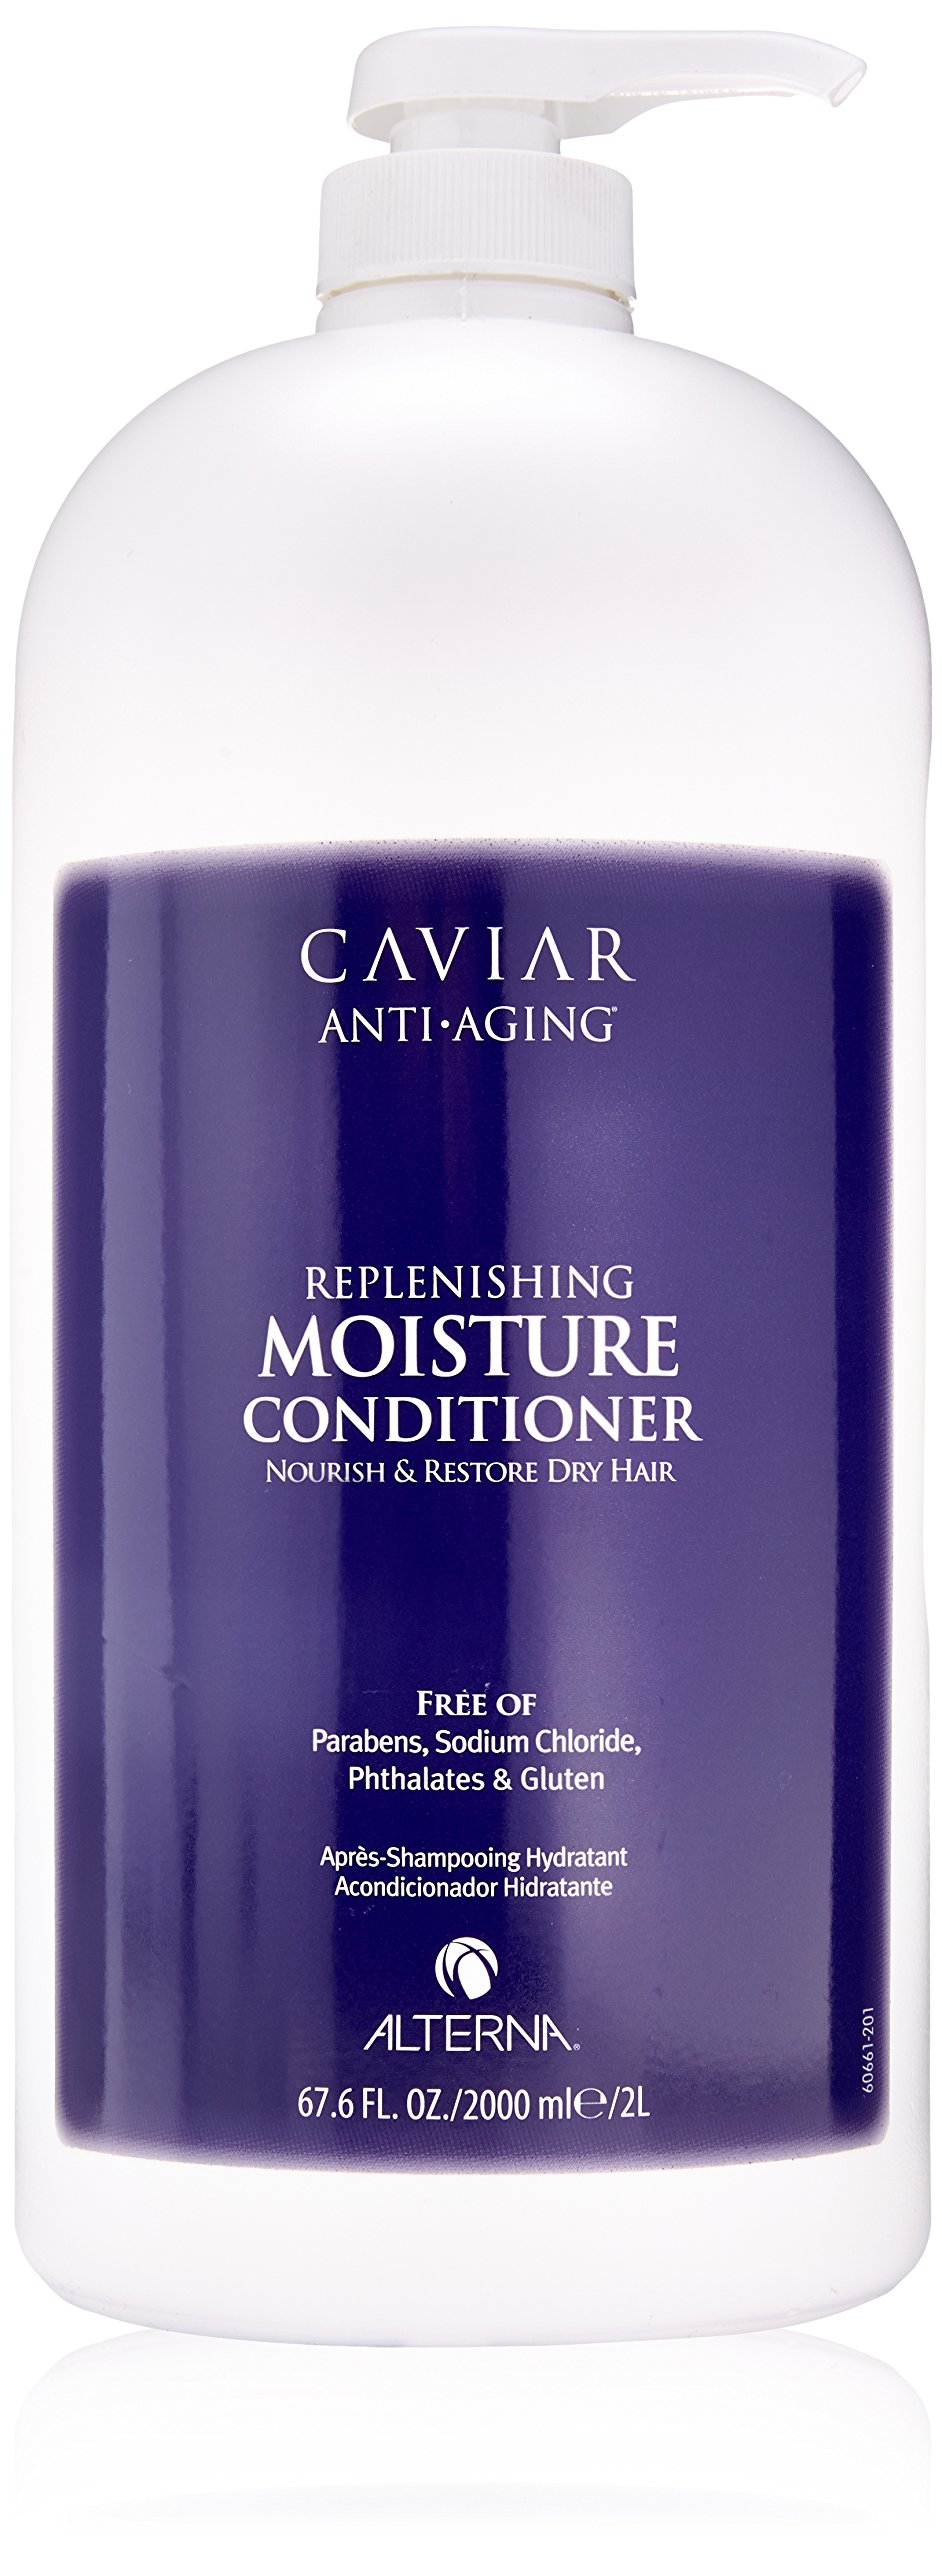 Alterna Caviar Anti-Aging Repleneshing Moisture Conditioner for Unisex, 67.6 Ounce by Alterna (Image #1)